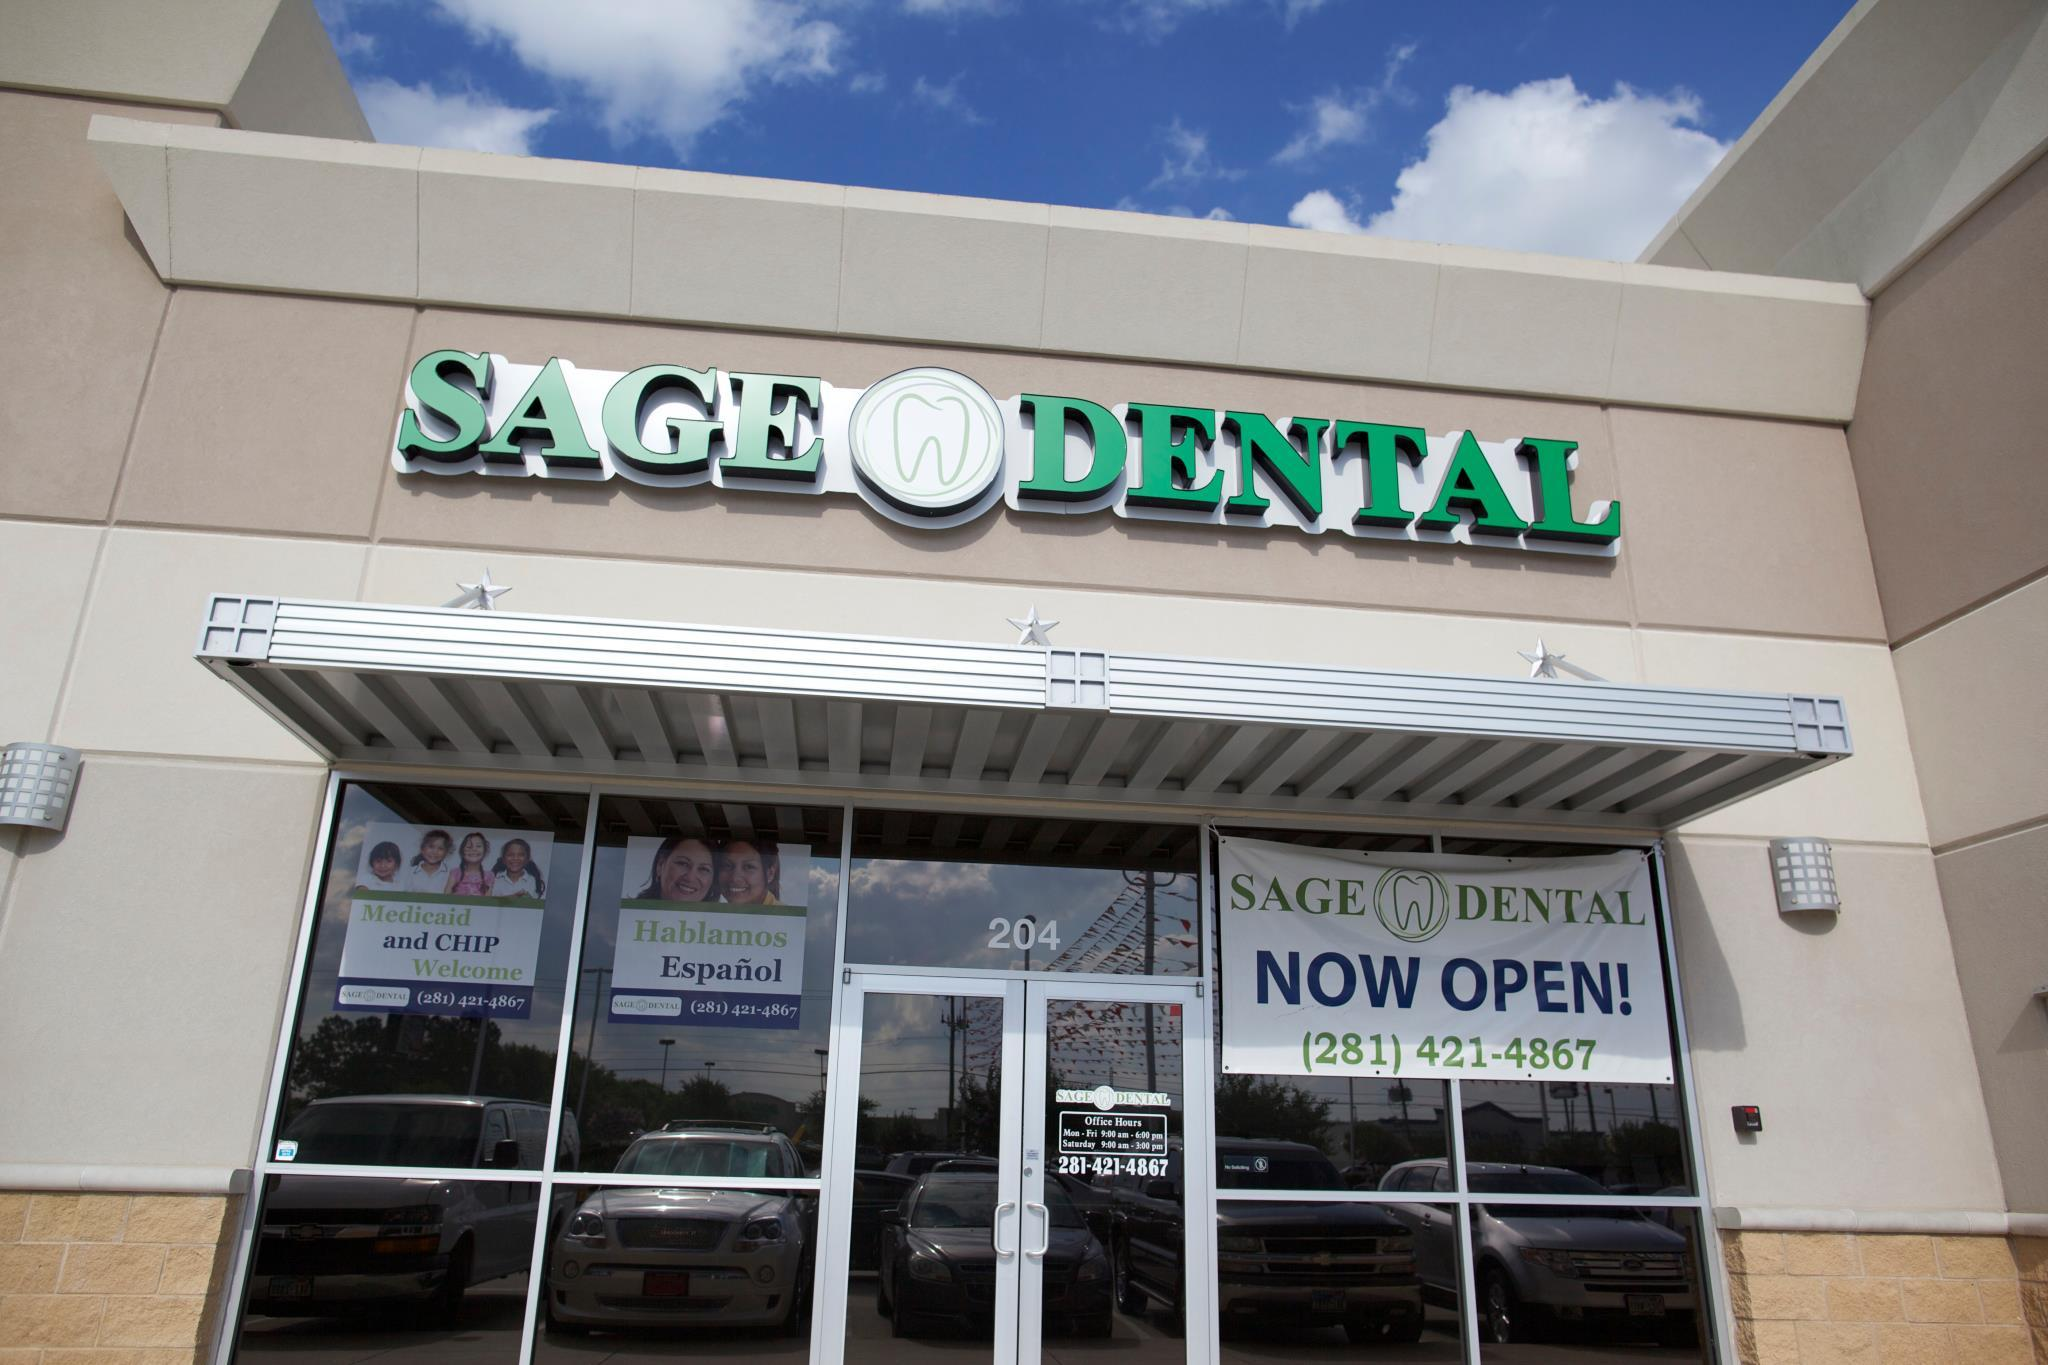 Sage dental in baytown tx whitepages for La porte tx phone directory